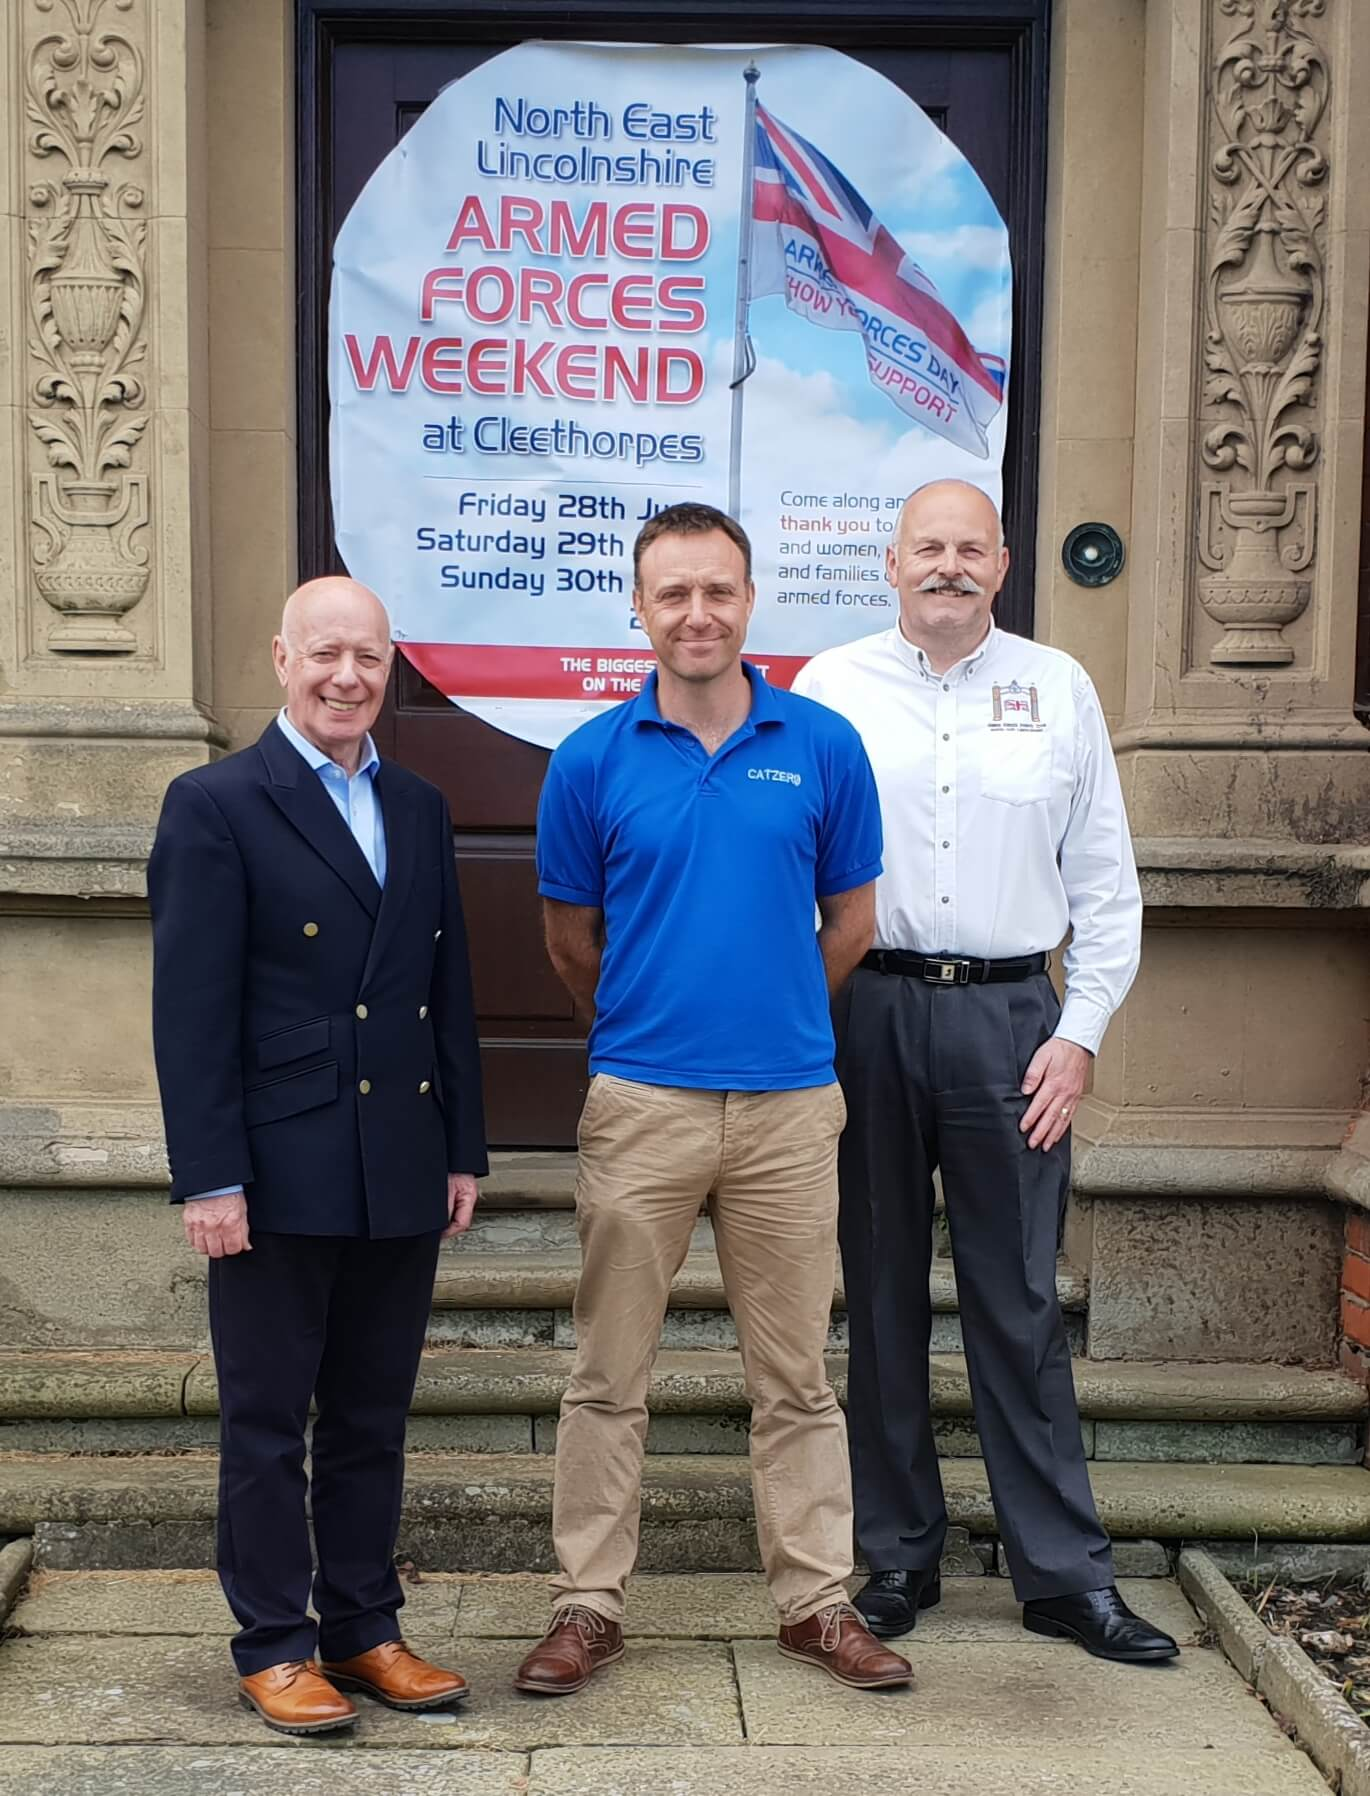 Veterans to benefit from new South Humber programme